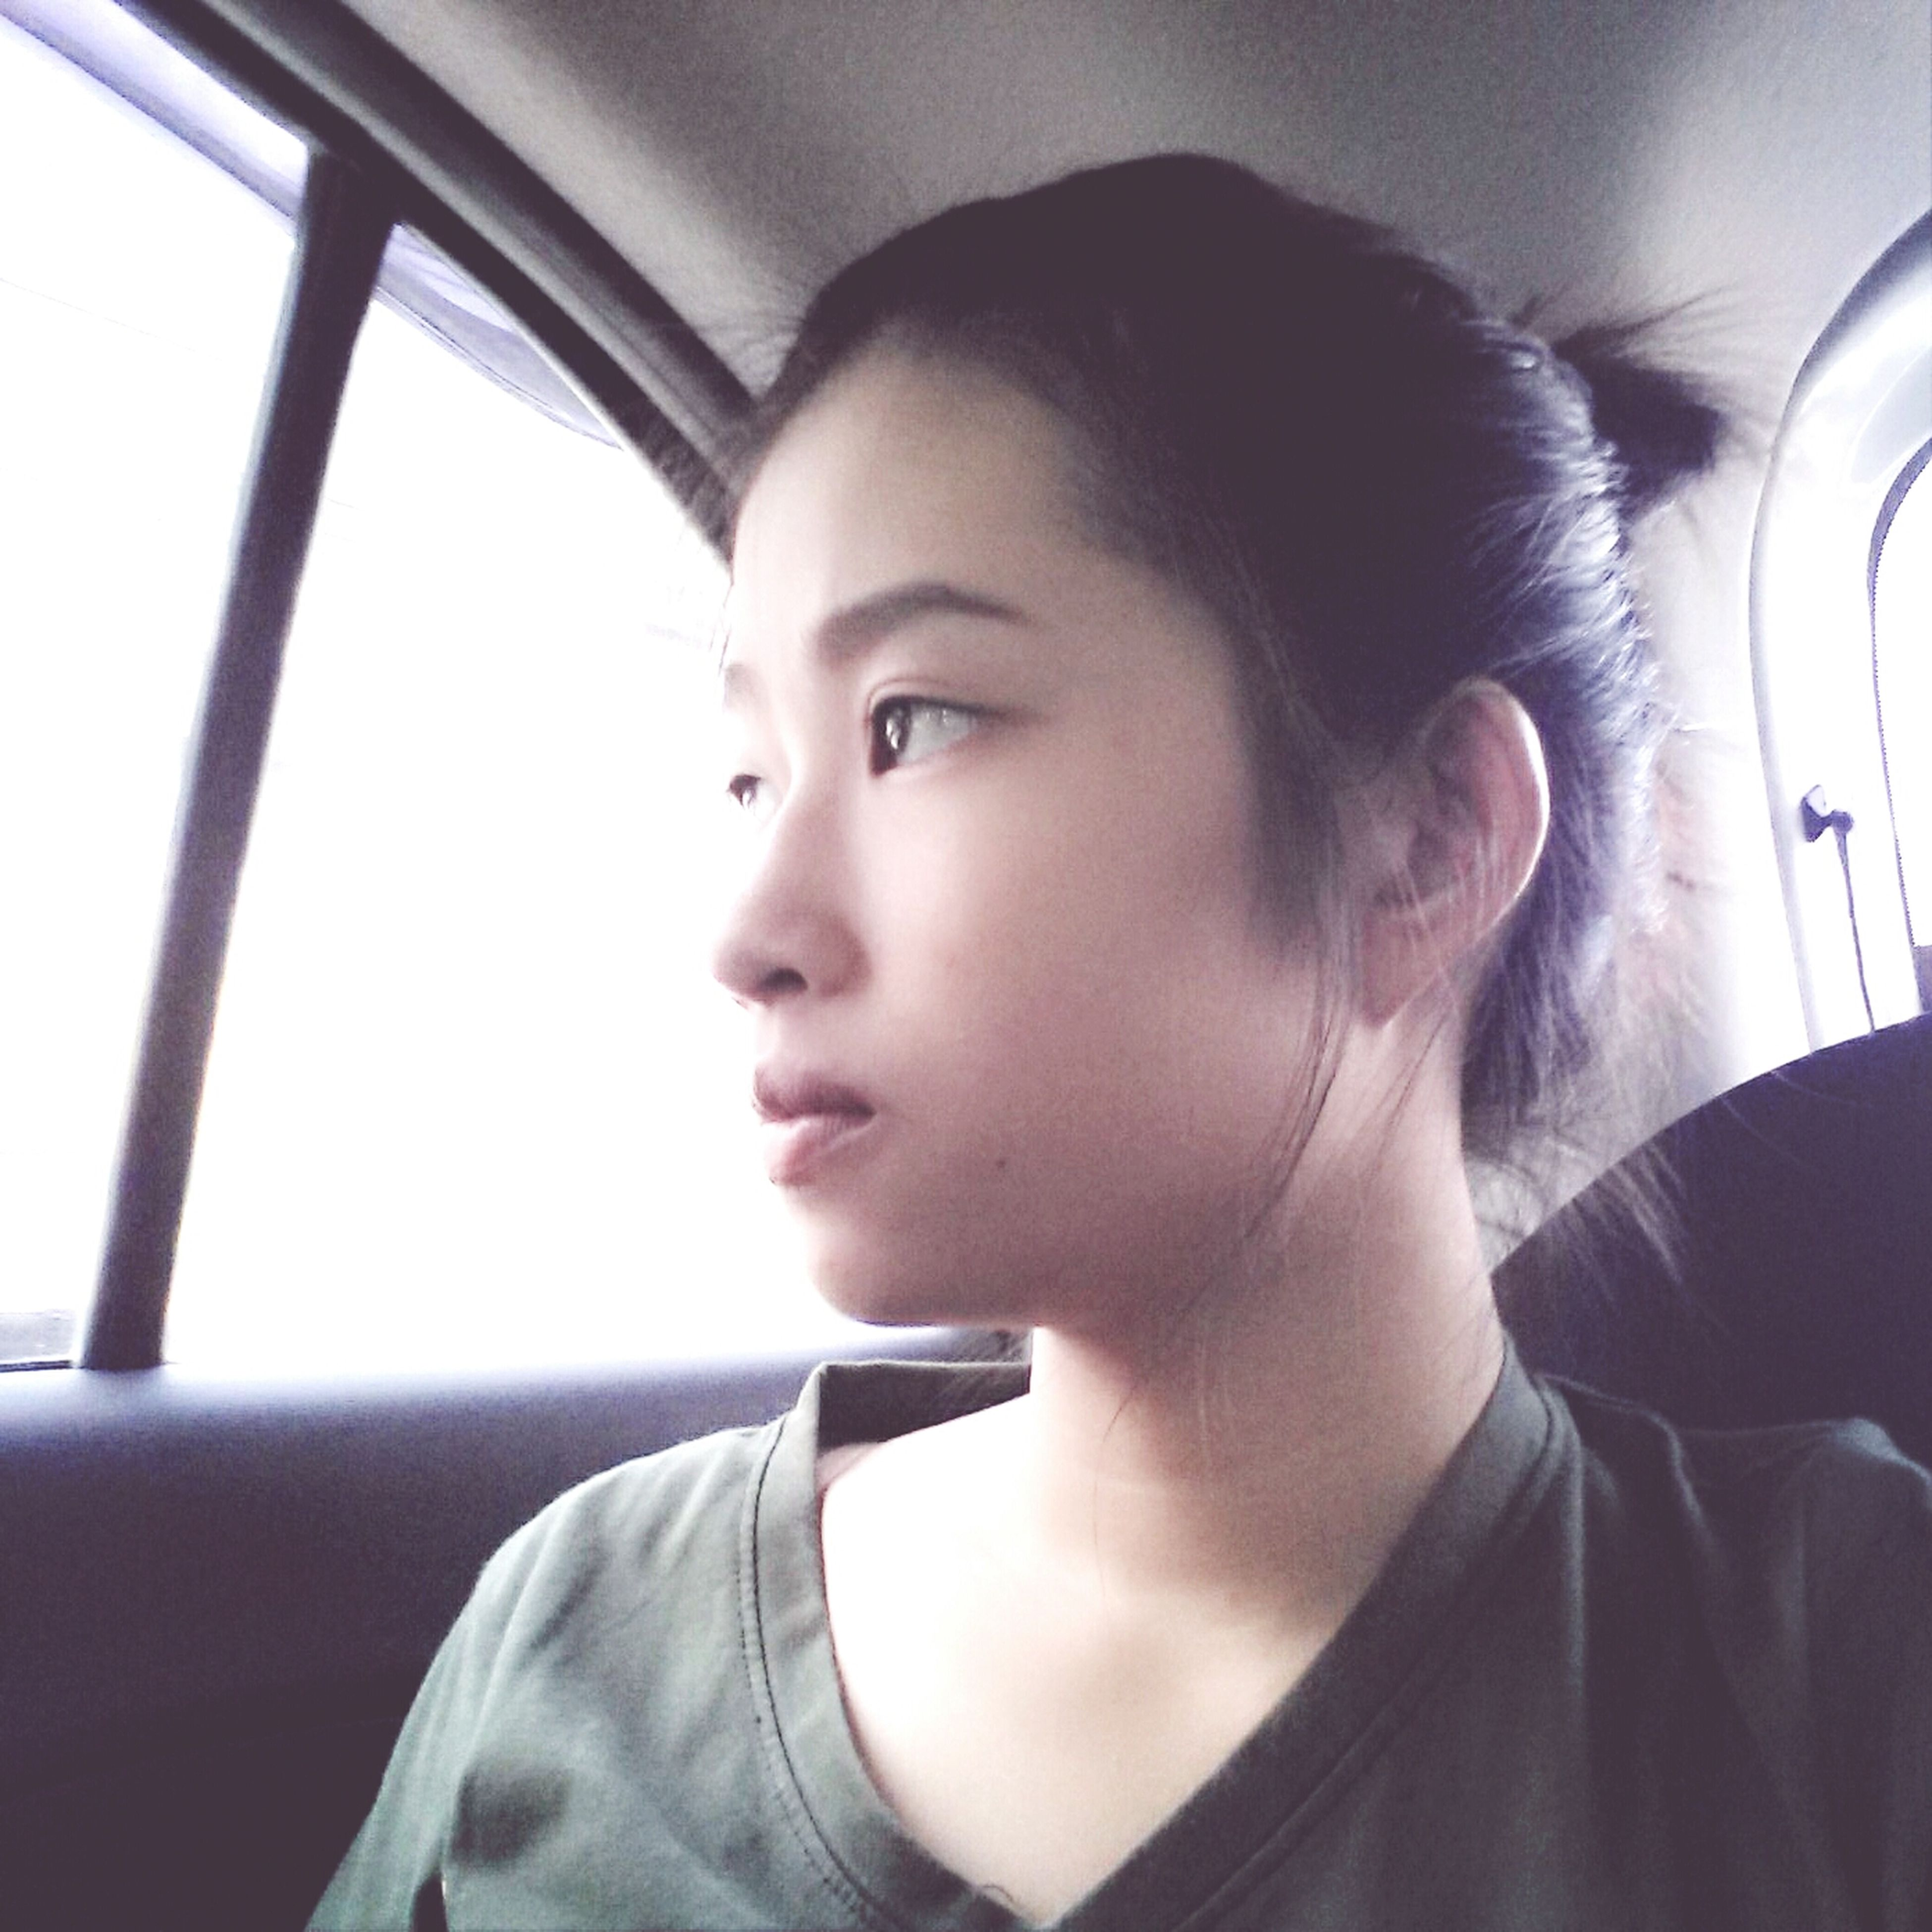 indoors, person, headshot, lifestyles, vehicle interior, portrait, looking at camera, young adult, transportation, leisure activity, casual clothing, head and shoulders, front view, window, young women, close-up, mode of transport